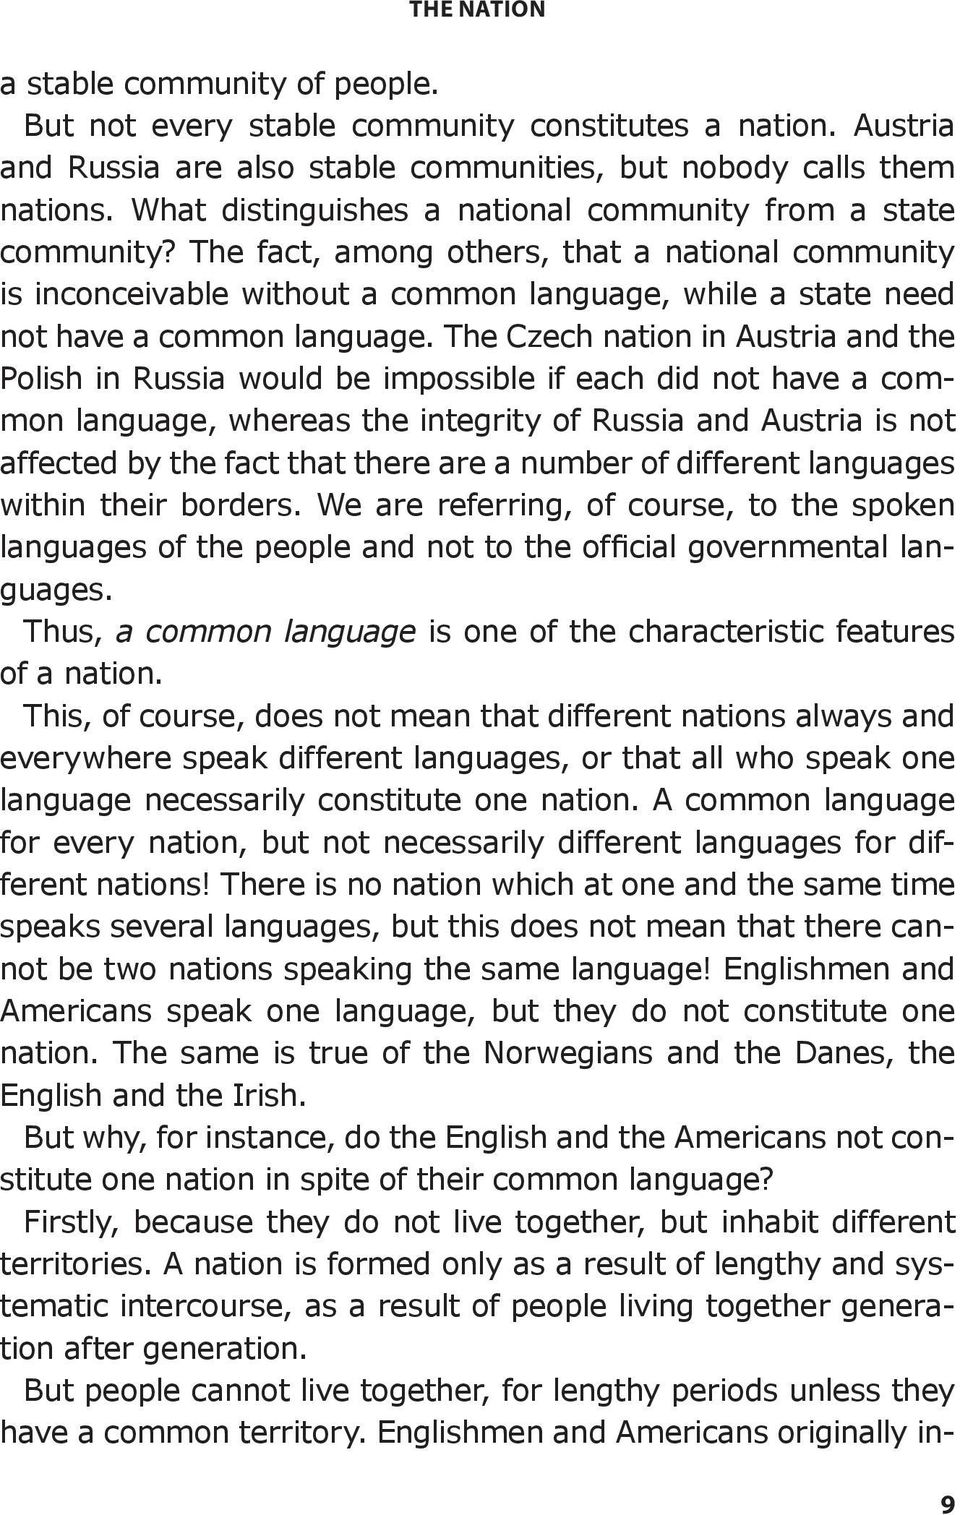 The fact, among others, that a national community is inconceivable without a common language, while a state need not have a common language.